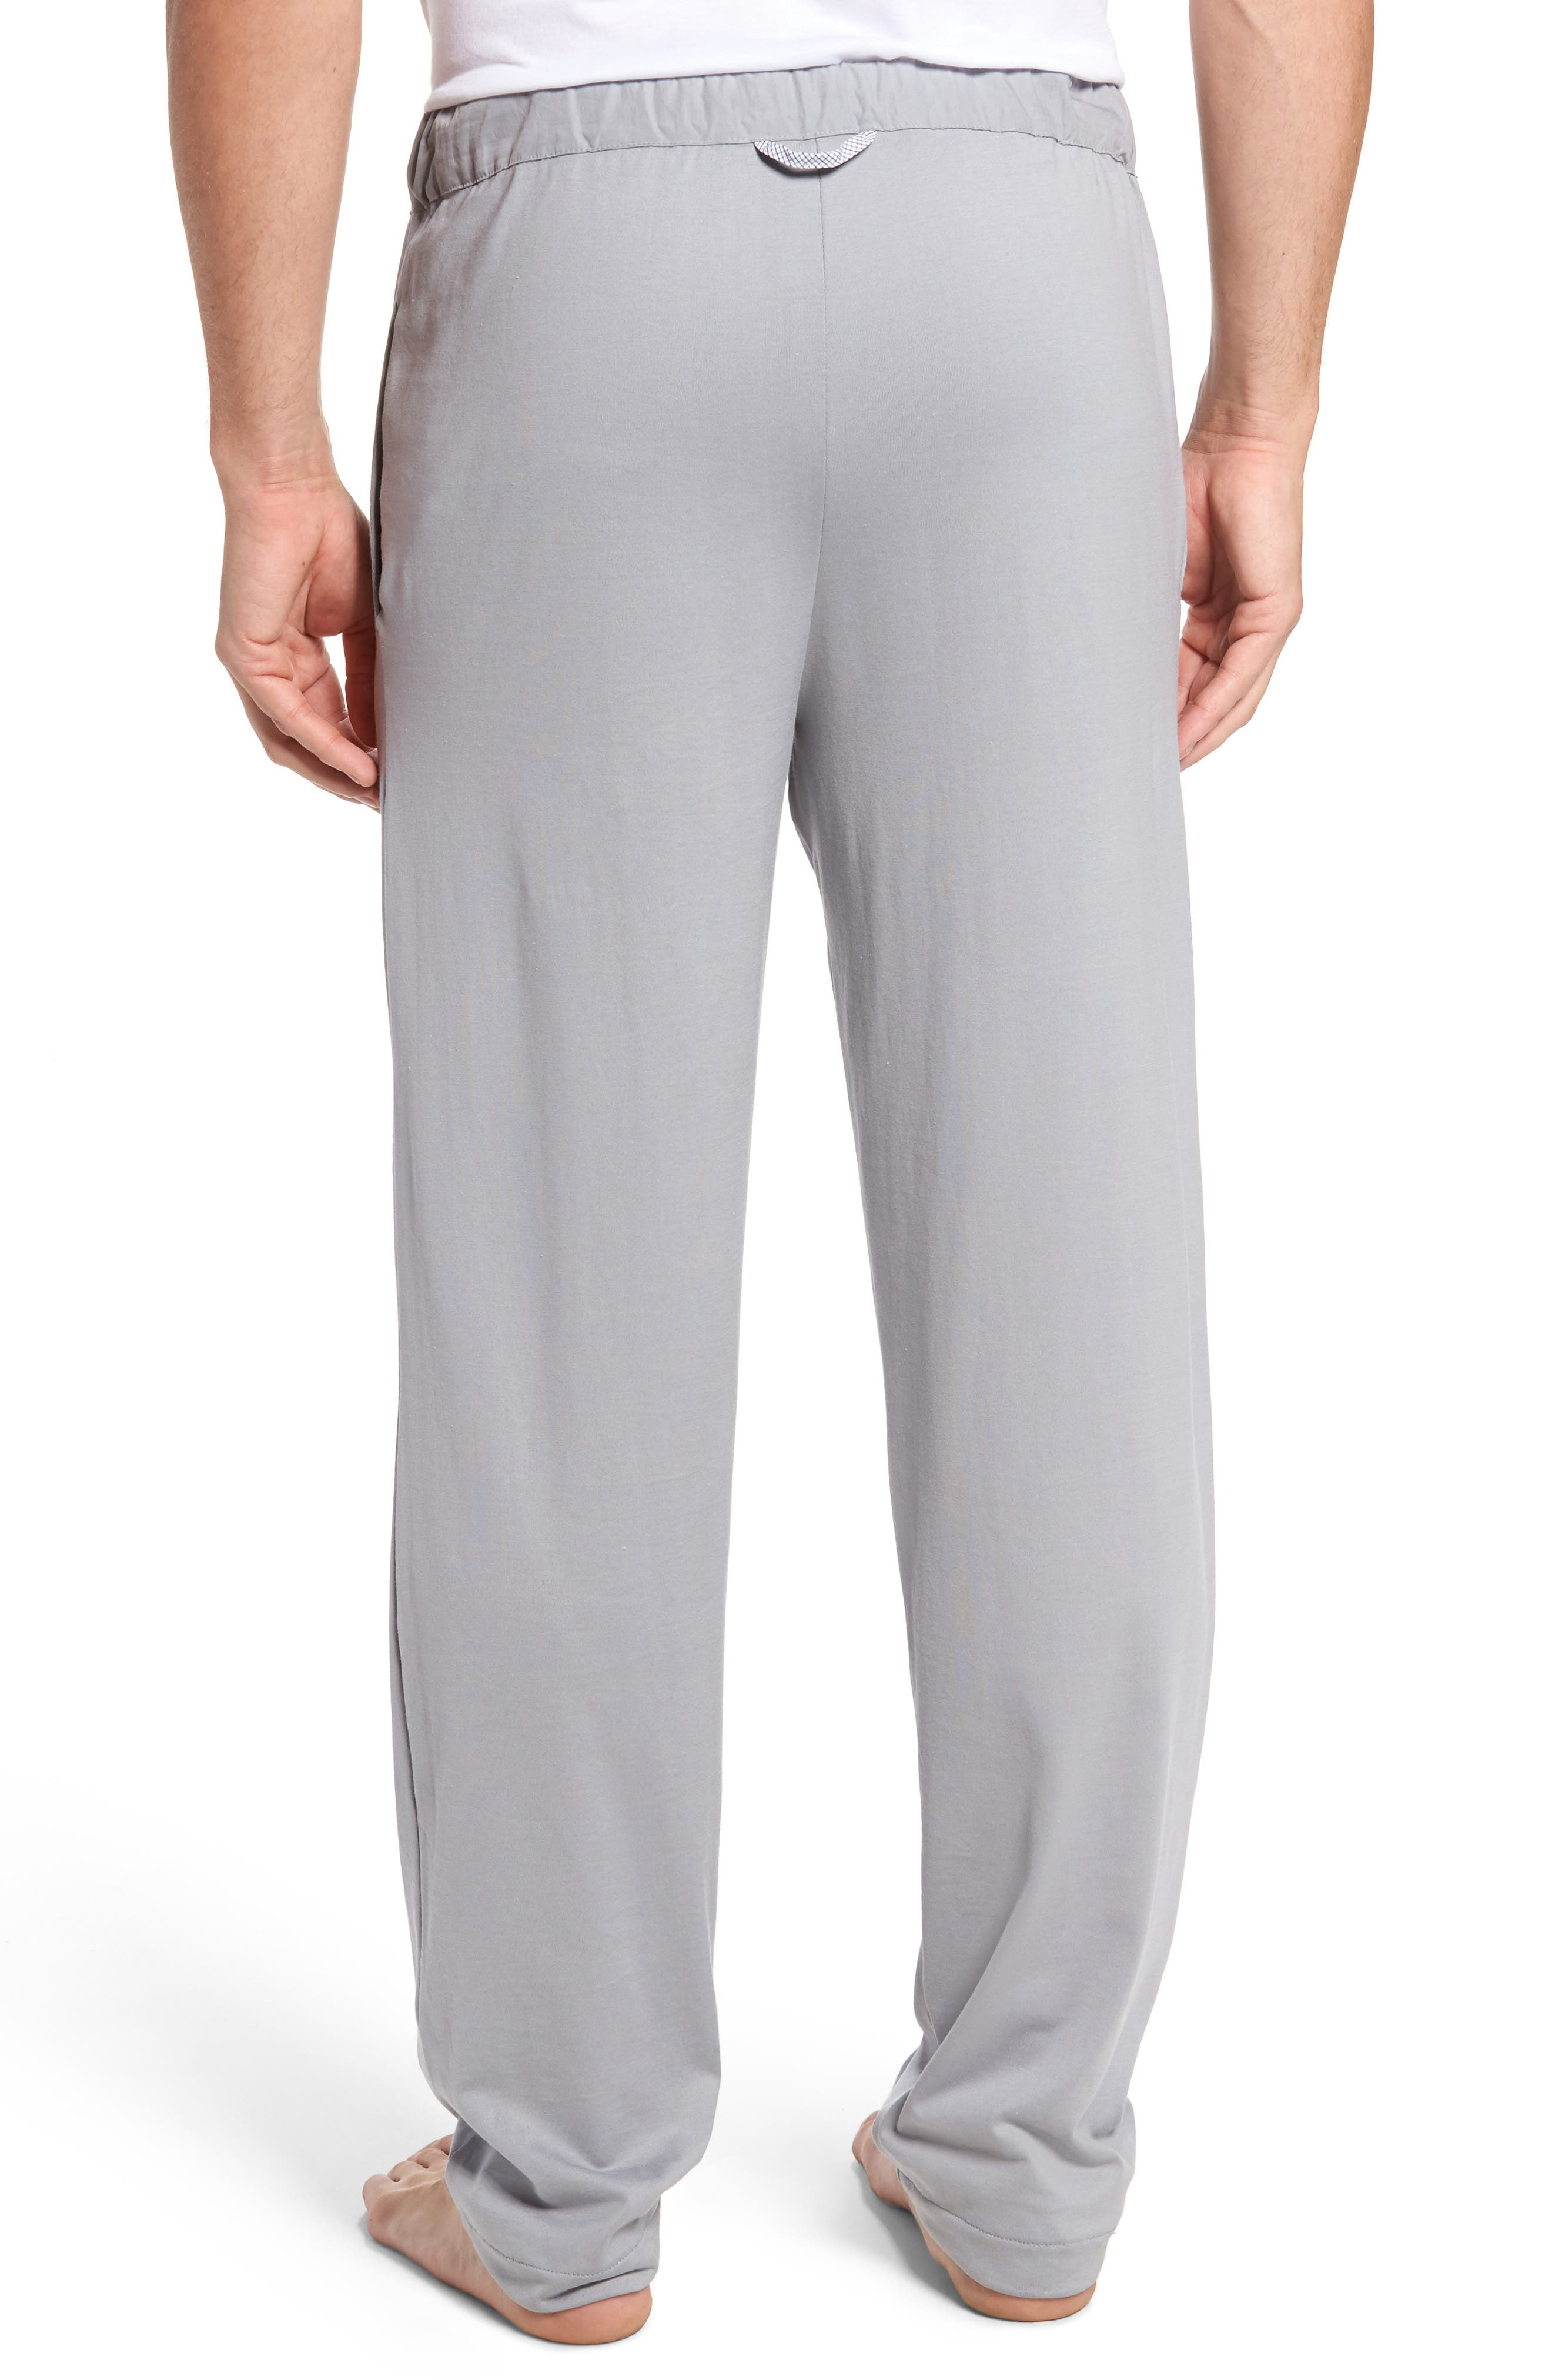 Night & Day Knit Lounge Pants,                             Alternate thumbnail 2, color,                             Mineral